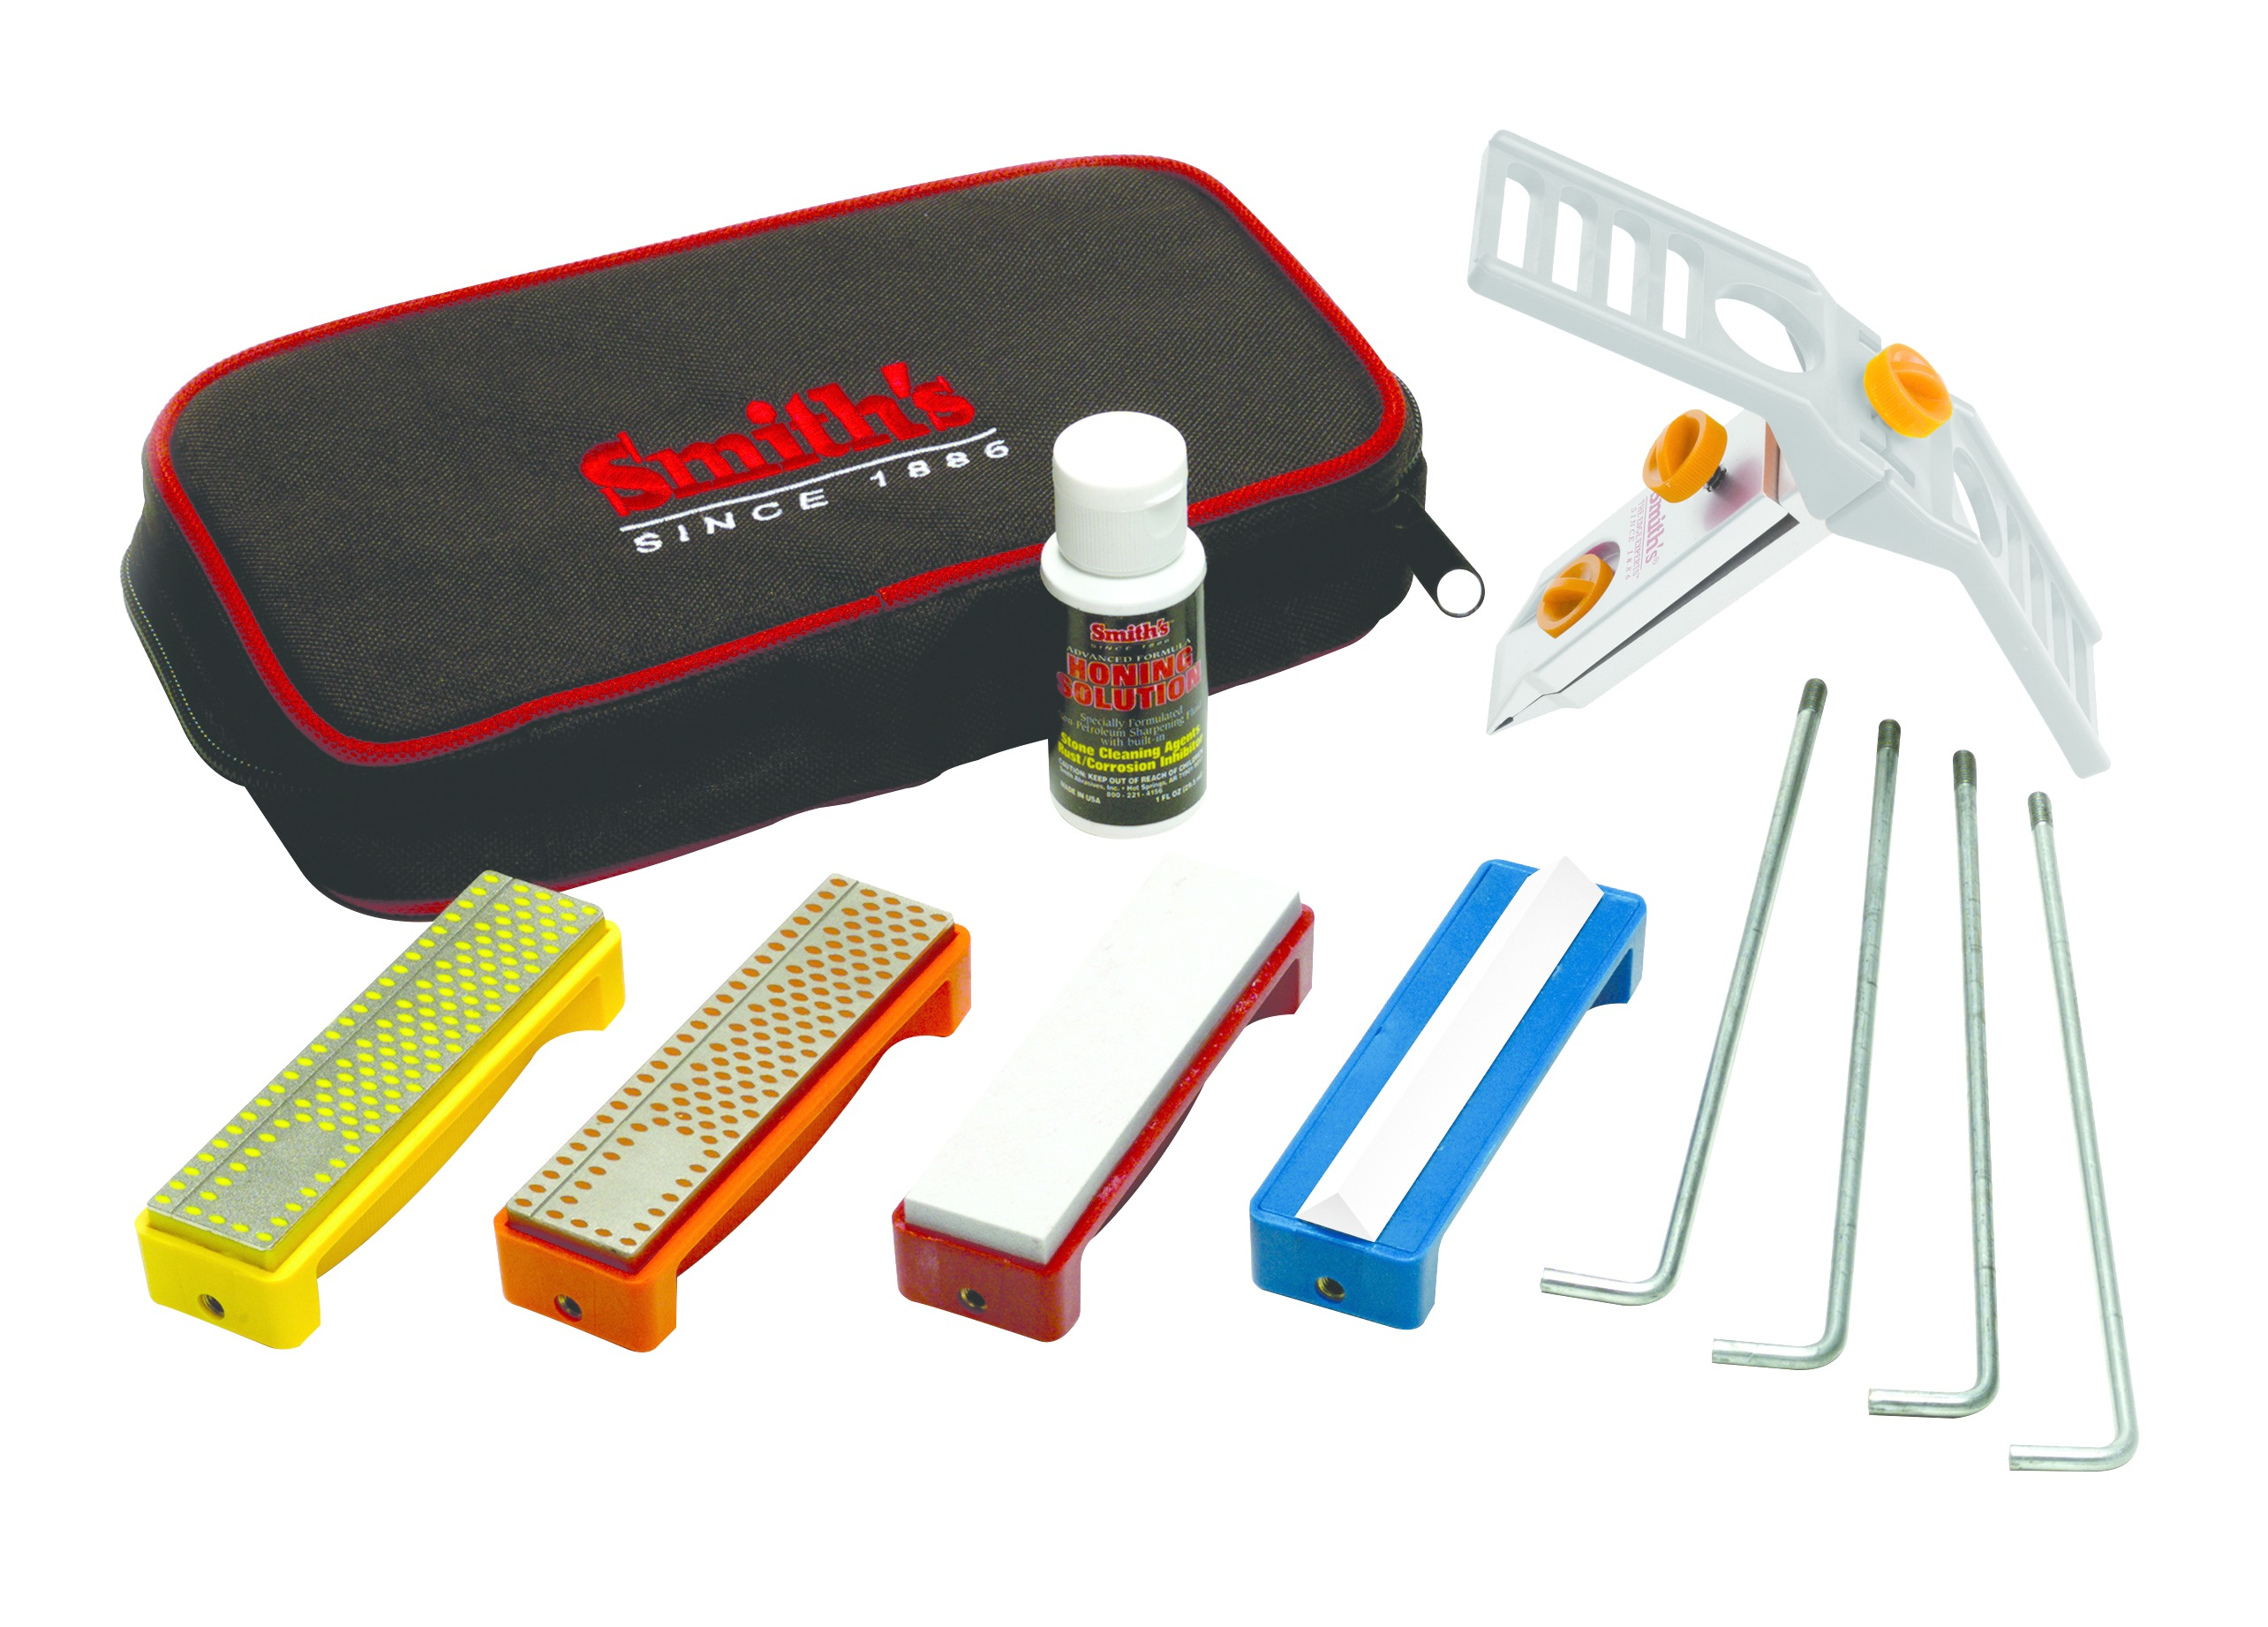 Smiths Abrasive Diamond-Ark Knife Sharpening System